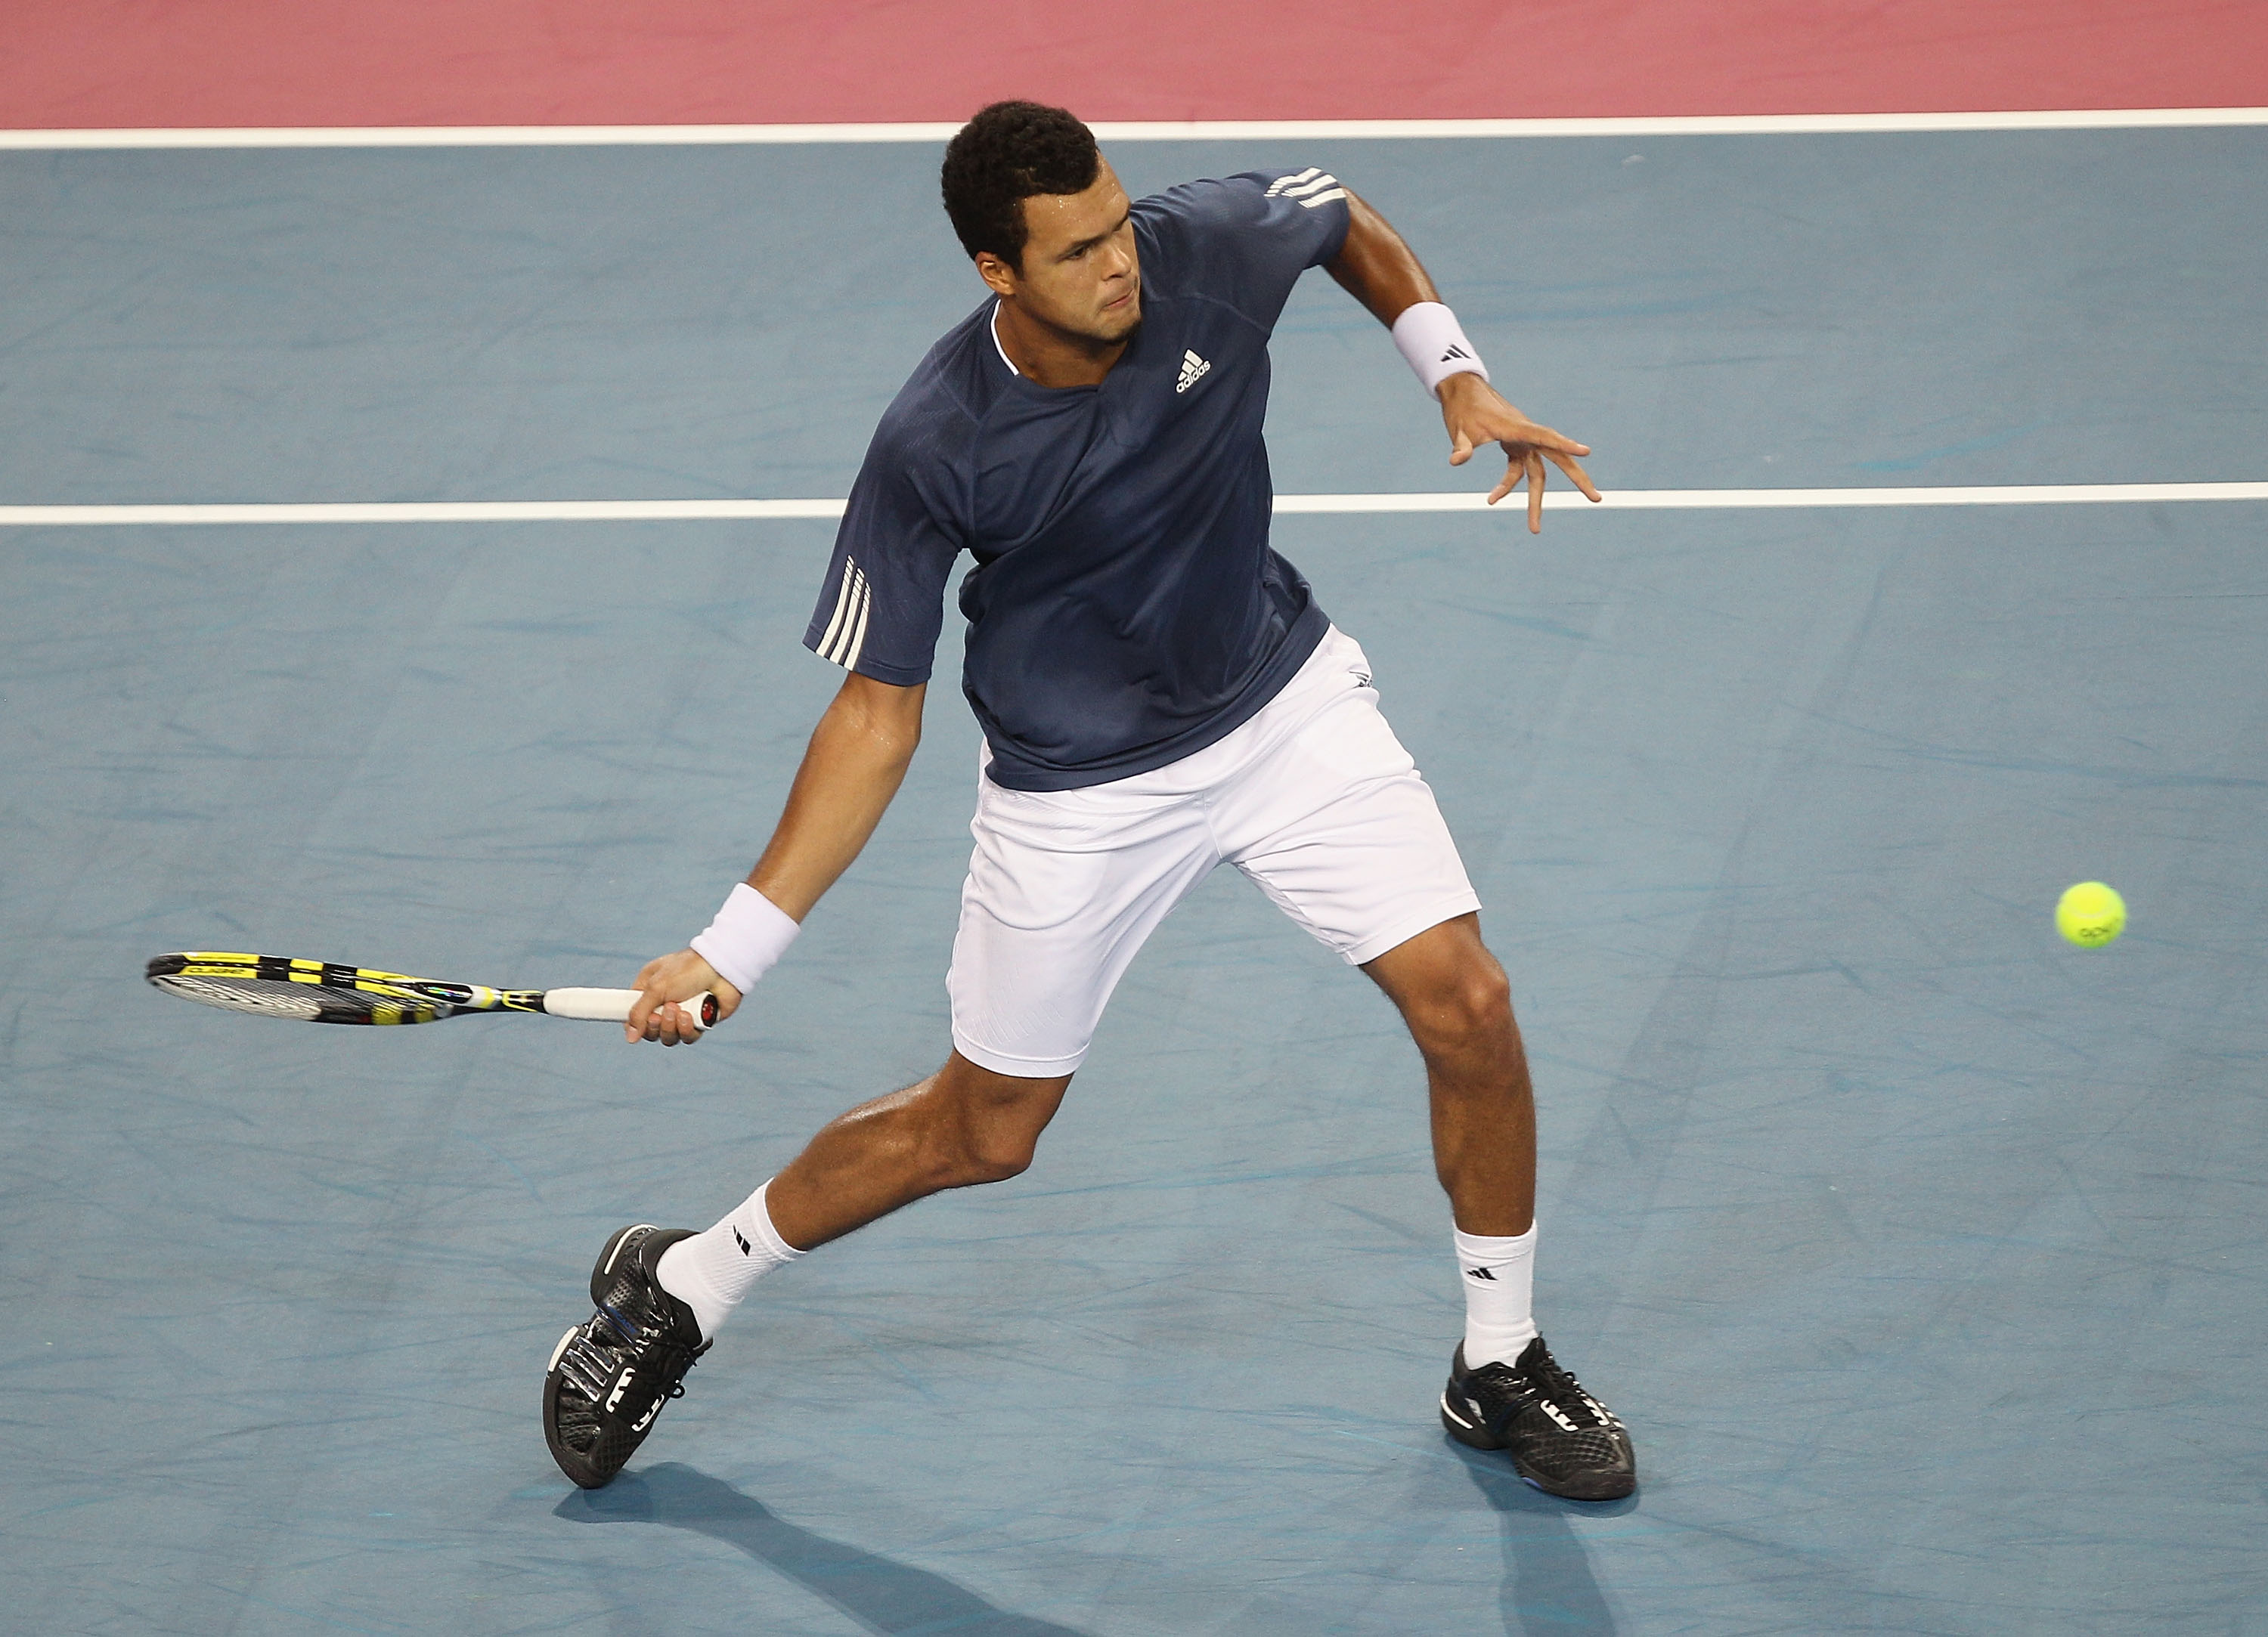 Tsonga missed the last few tournaments of 2010 due to a knee injury.